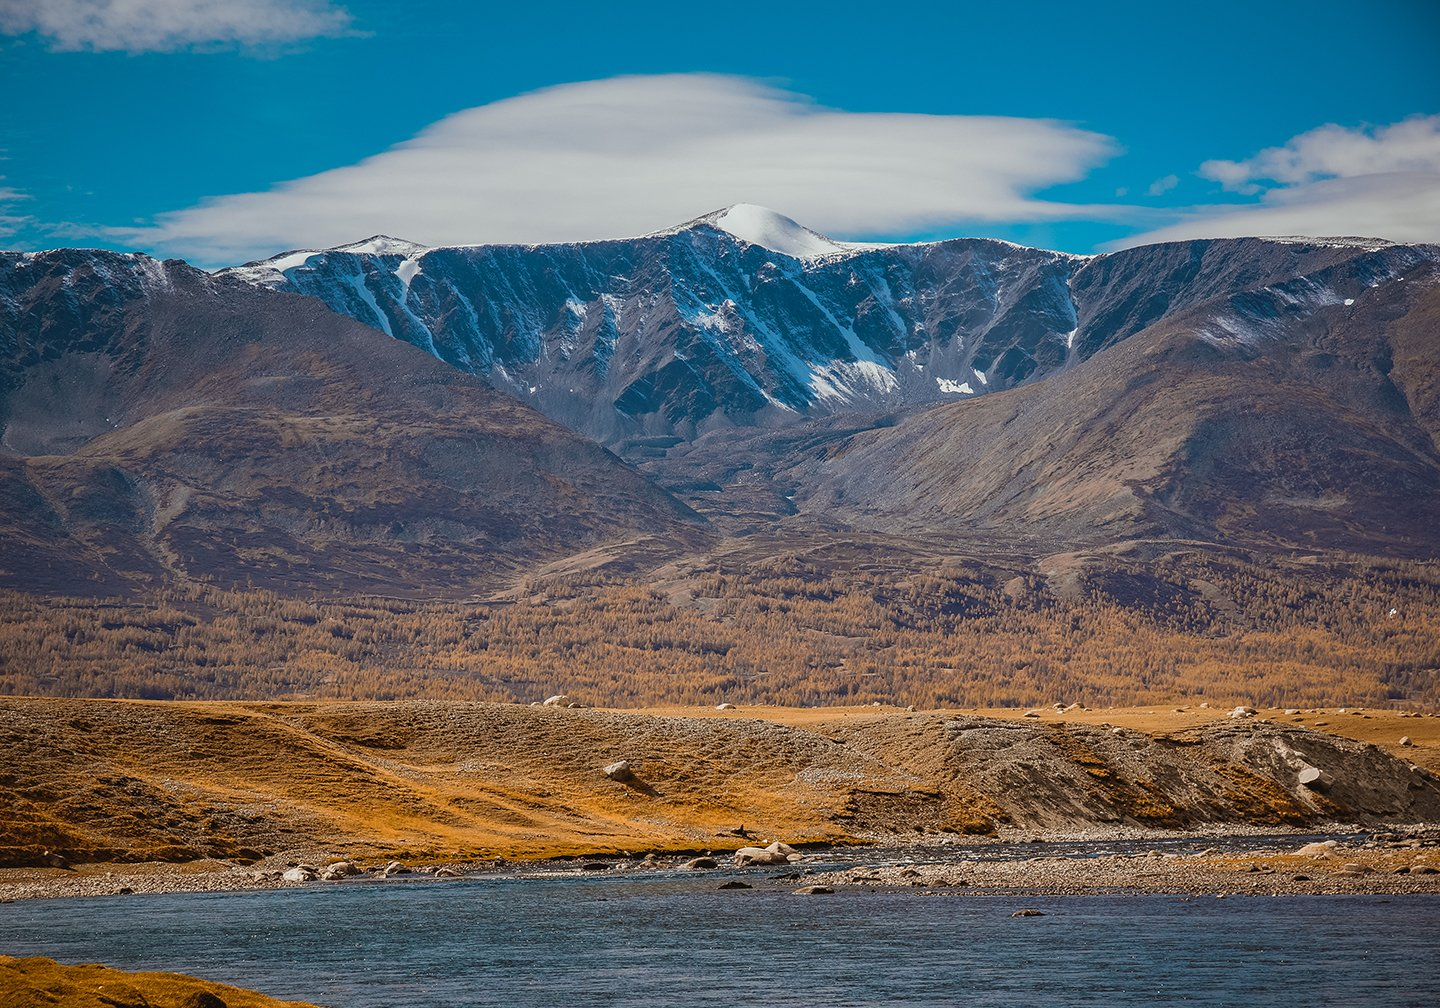 A view of the Mongolian Highlands with water in the foreground and snow-topped mountains in the distance.